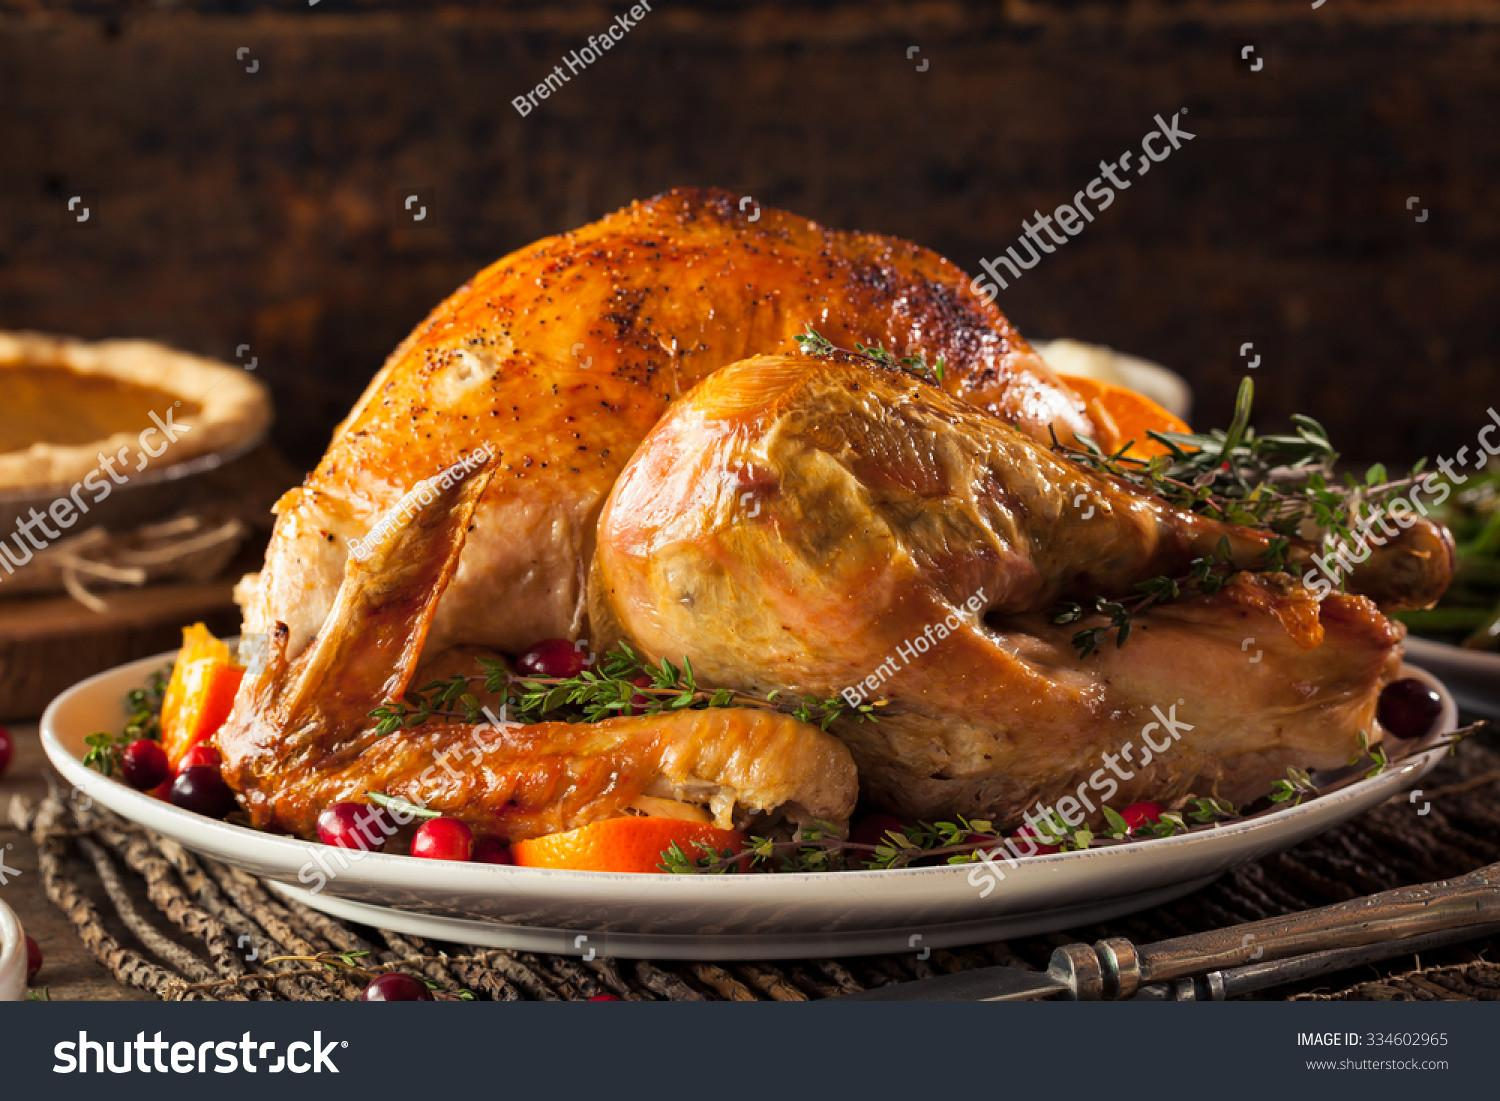 Homemade Roasted Thanksgiving Day Turkey All